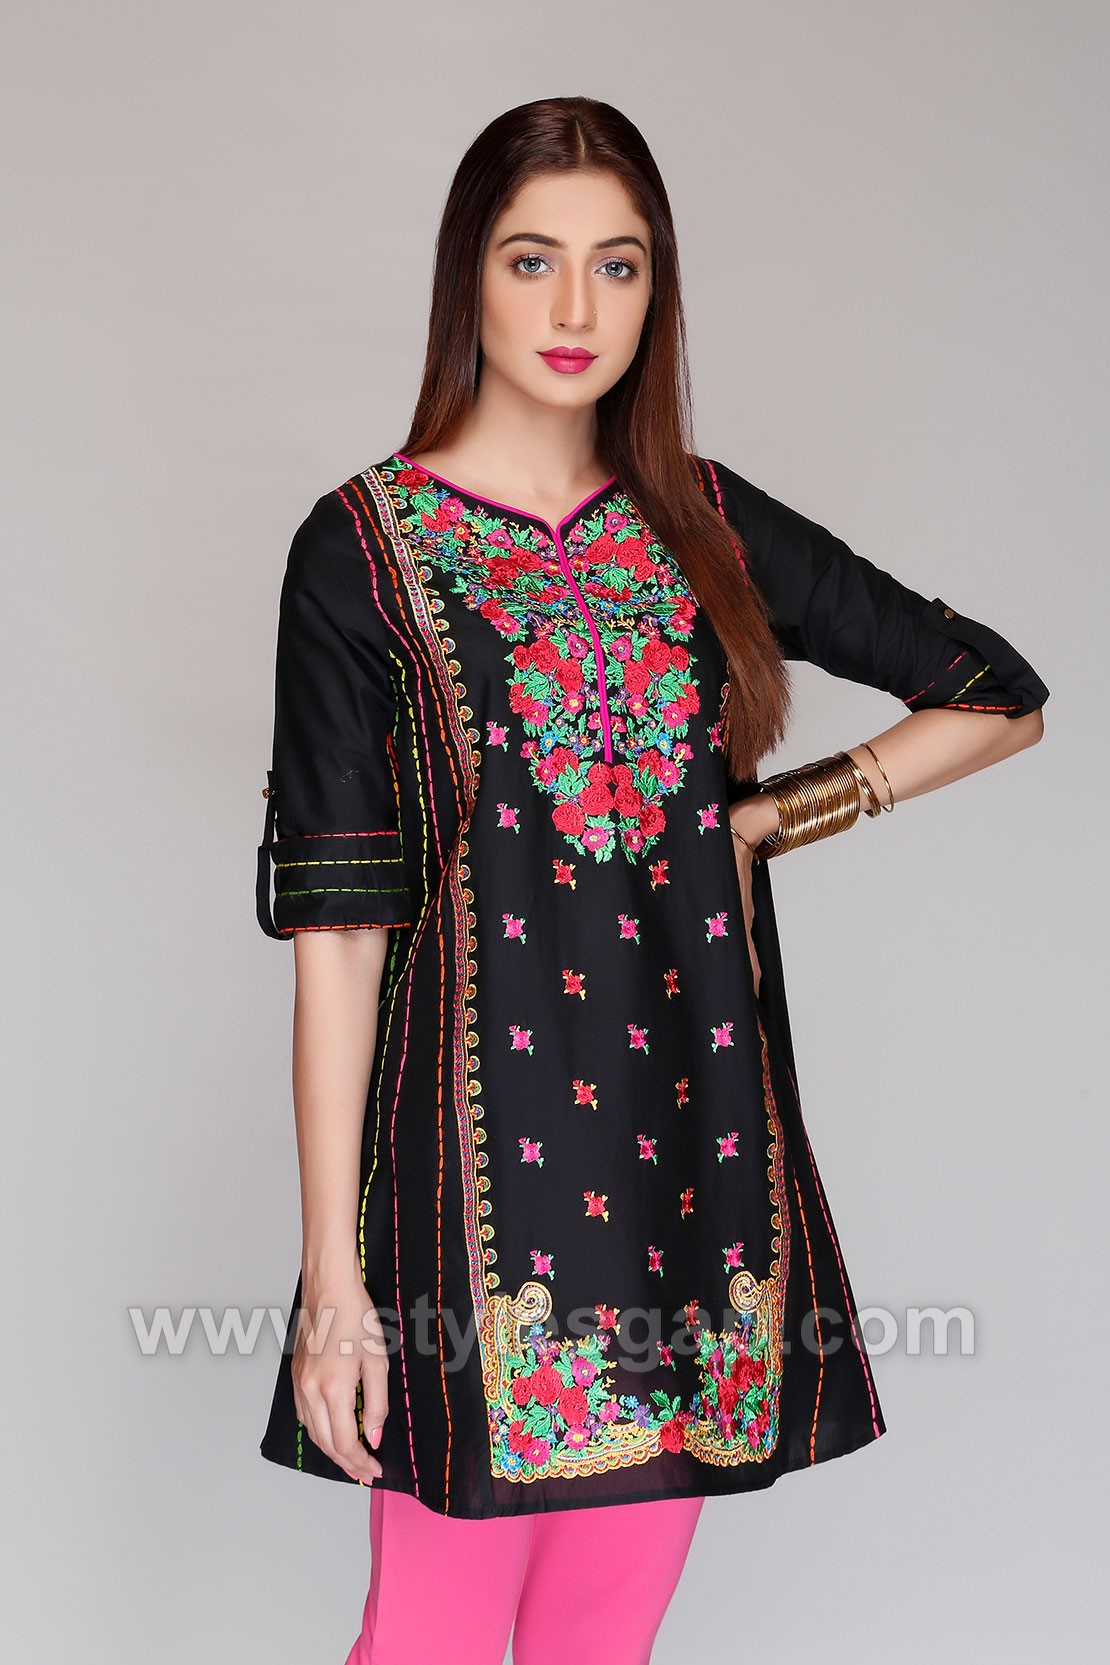 6acdf1c96016 12 Must Have Simple Stylish Eid Dresses Trends 2018-2019 to Follow